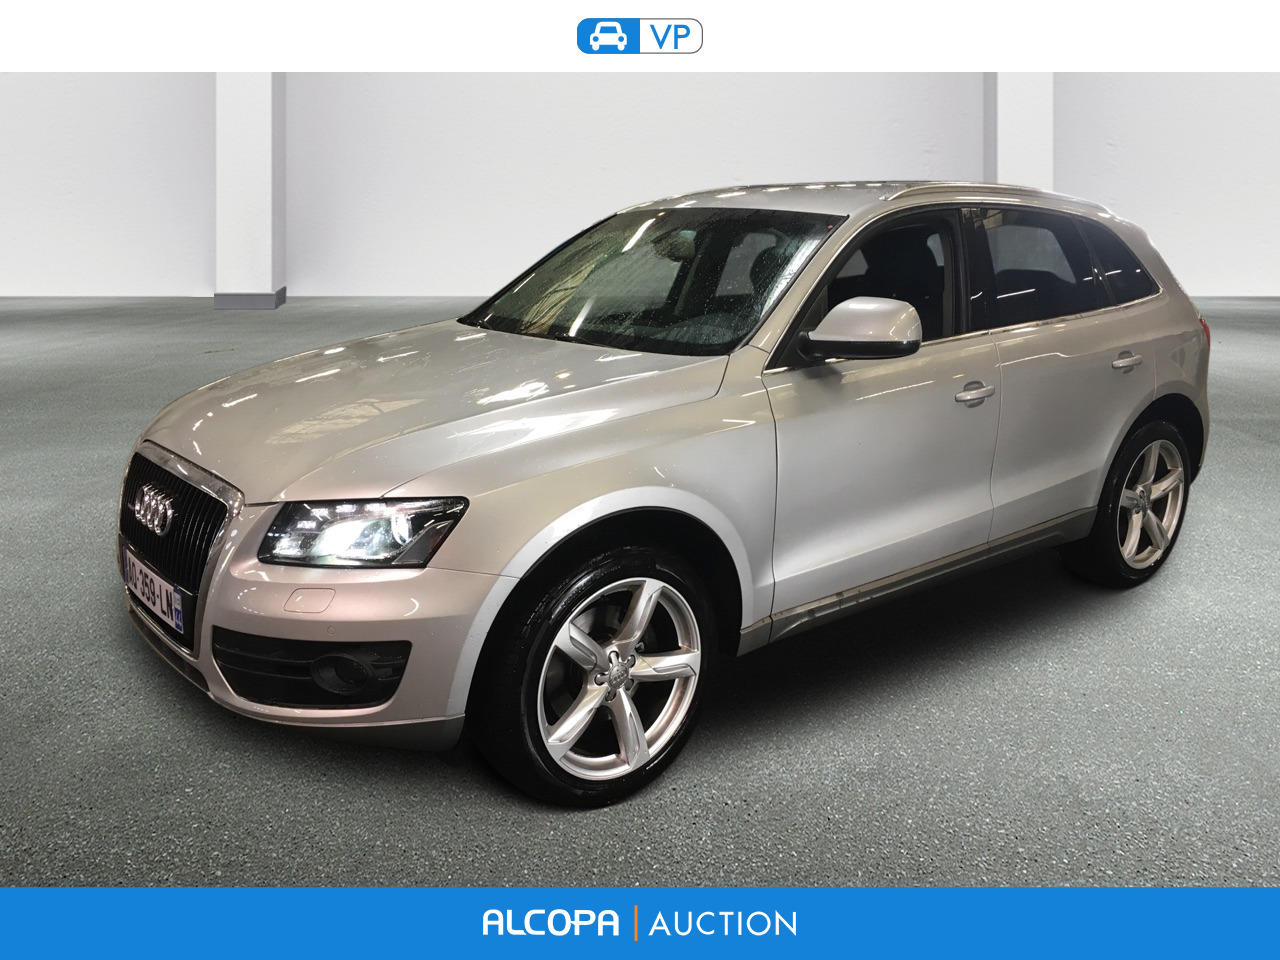 audi q5 q5 3 0 v6 tdi 240ch fap avus quattro s tronic 7 alcopa auction. Black Bedroom Furniture Sets. Home Design Ideas